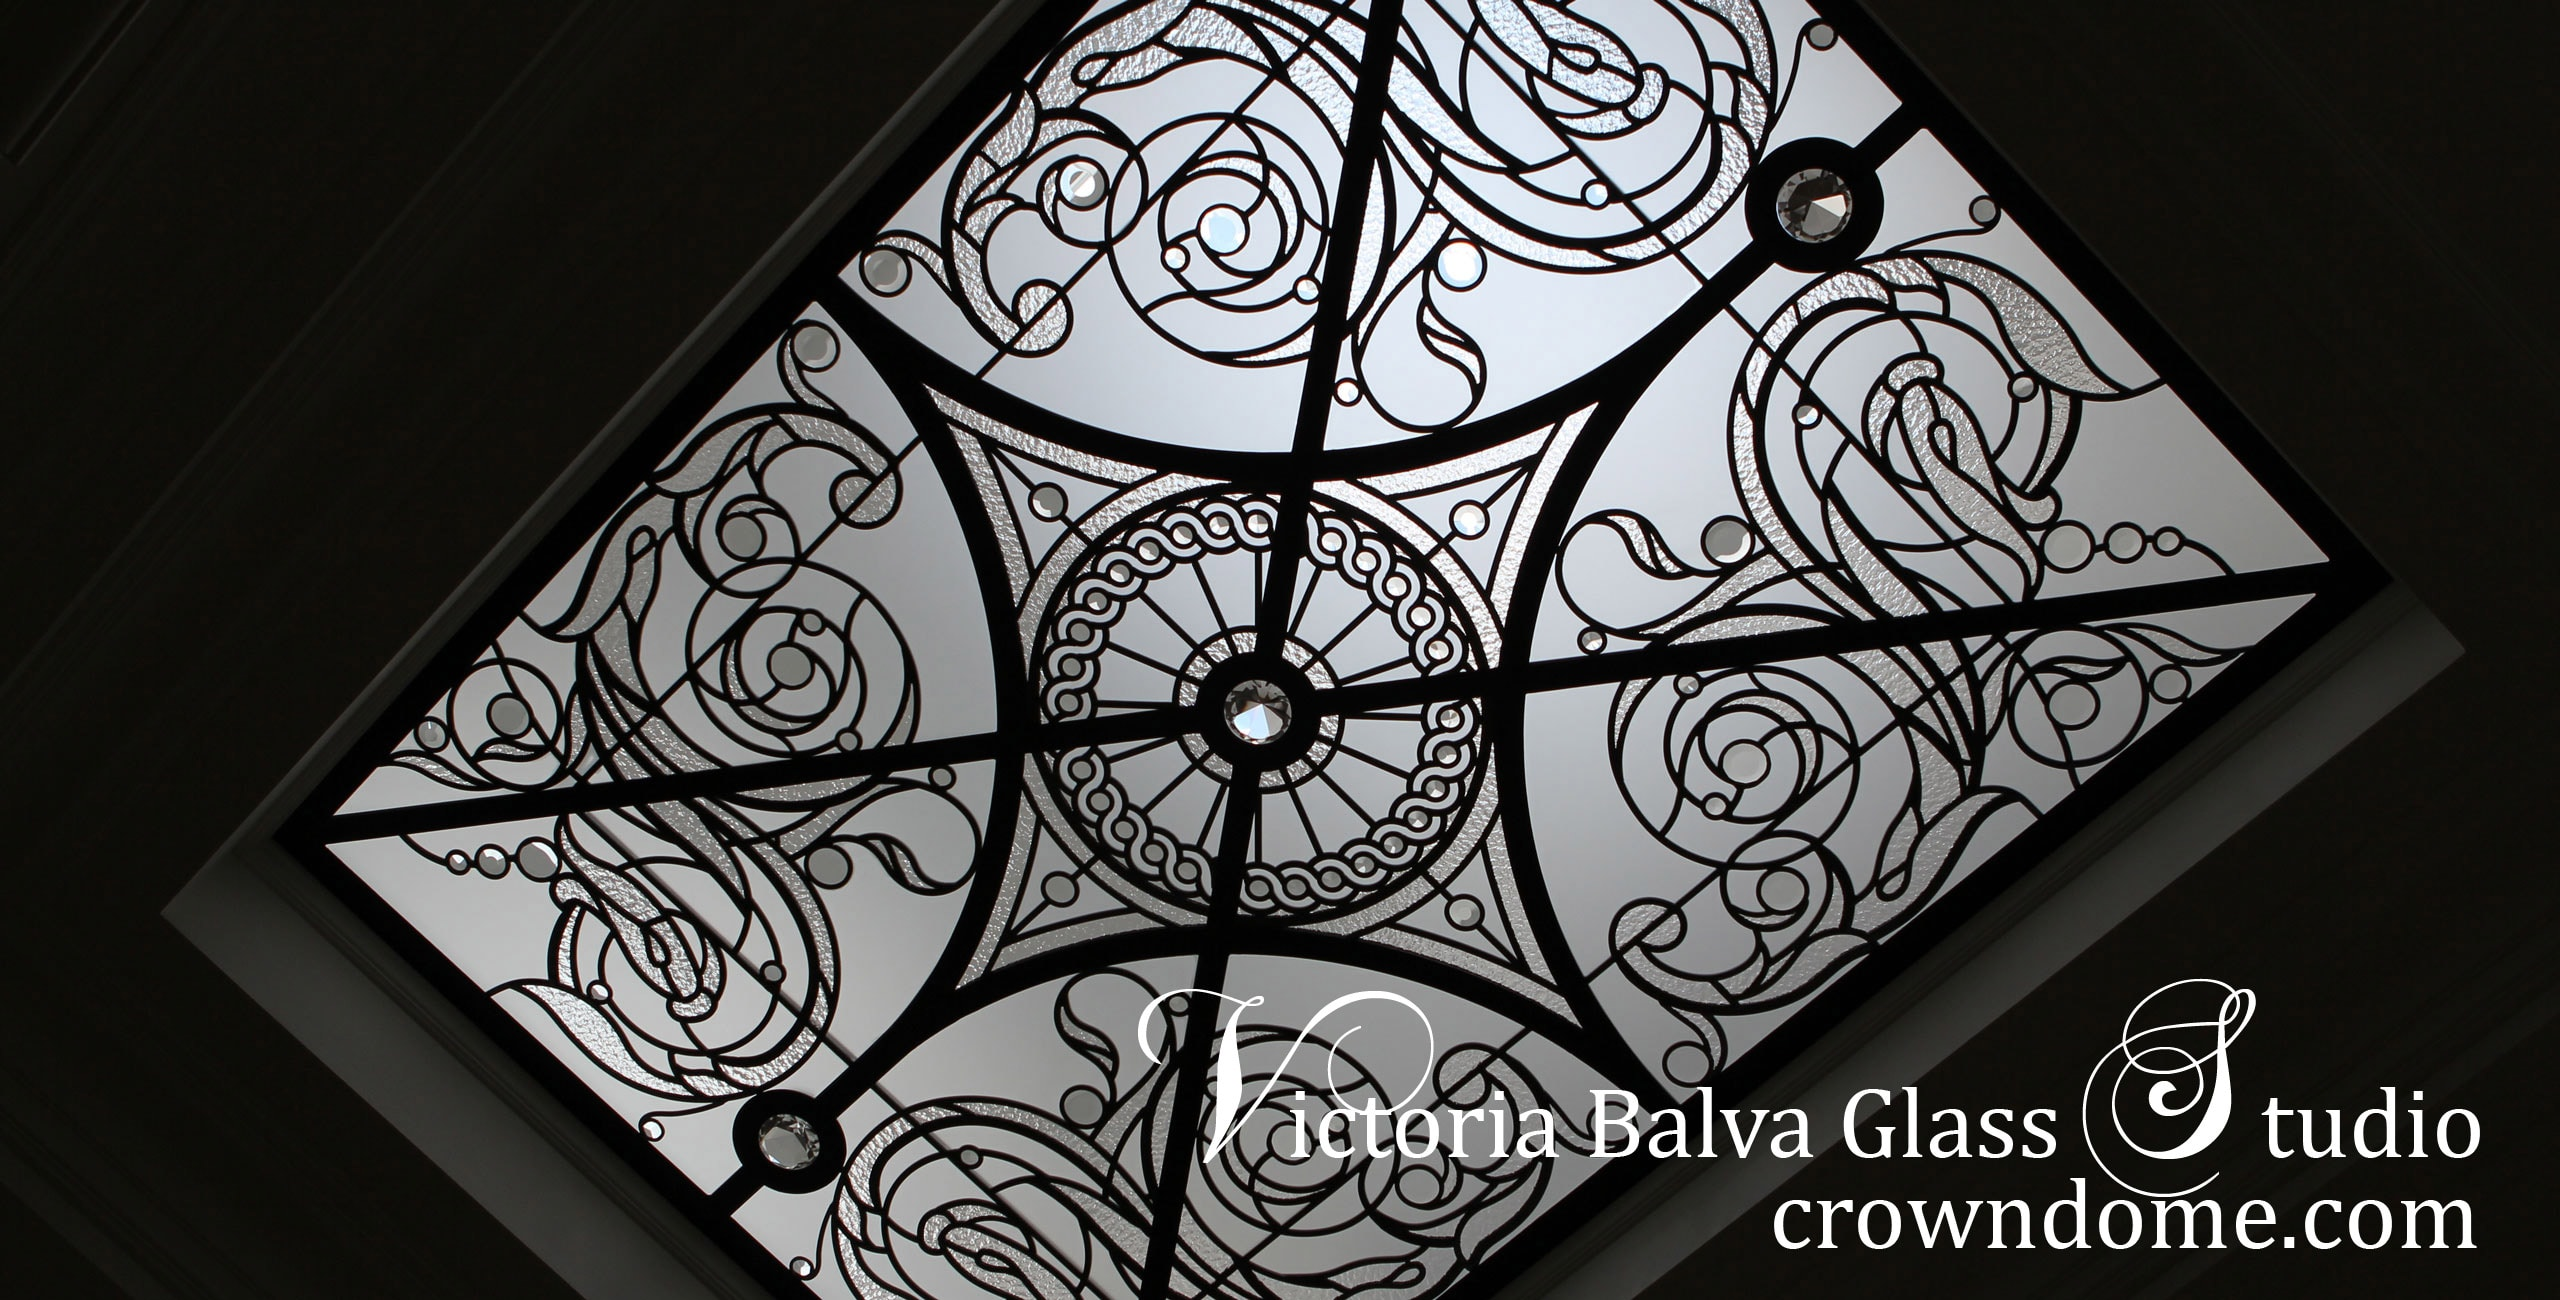 Leaded glass skylight ceiling Germana in classic style with large crystal jewels for a luxury built private residence. Clear textured glass, beveled glass, clear crystal jewels. Original design by glass artist Victoria Balva